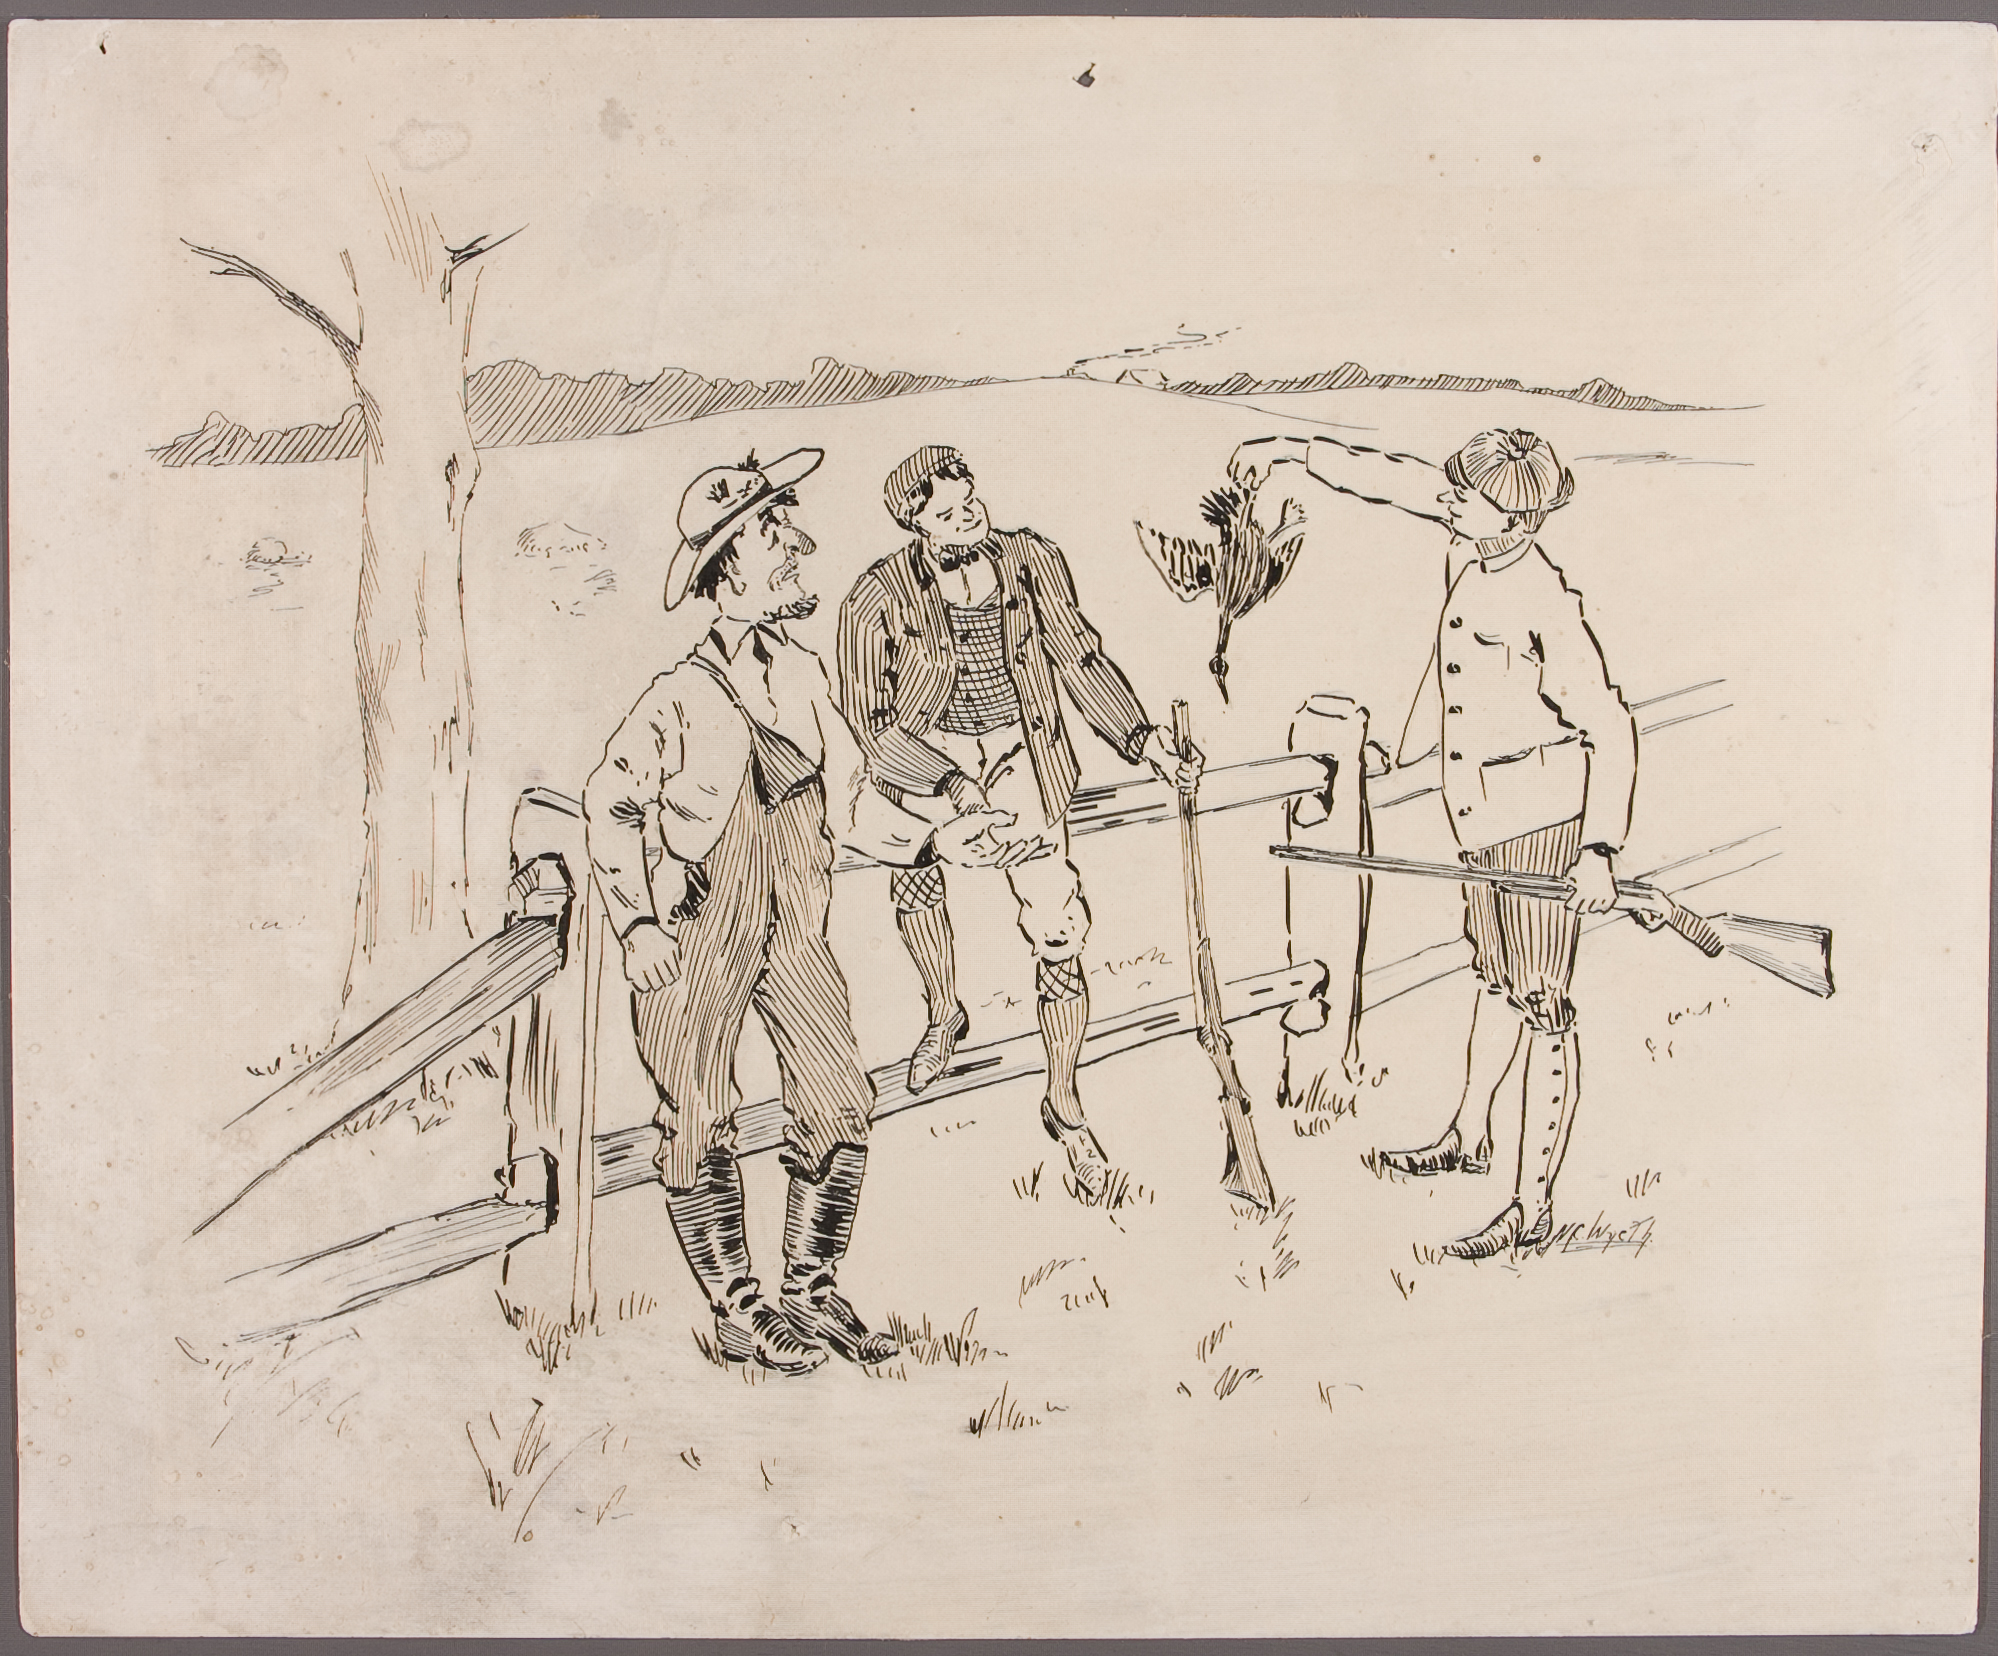 NC_Wyeth_drawing-04-after